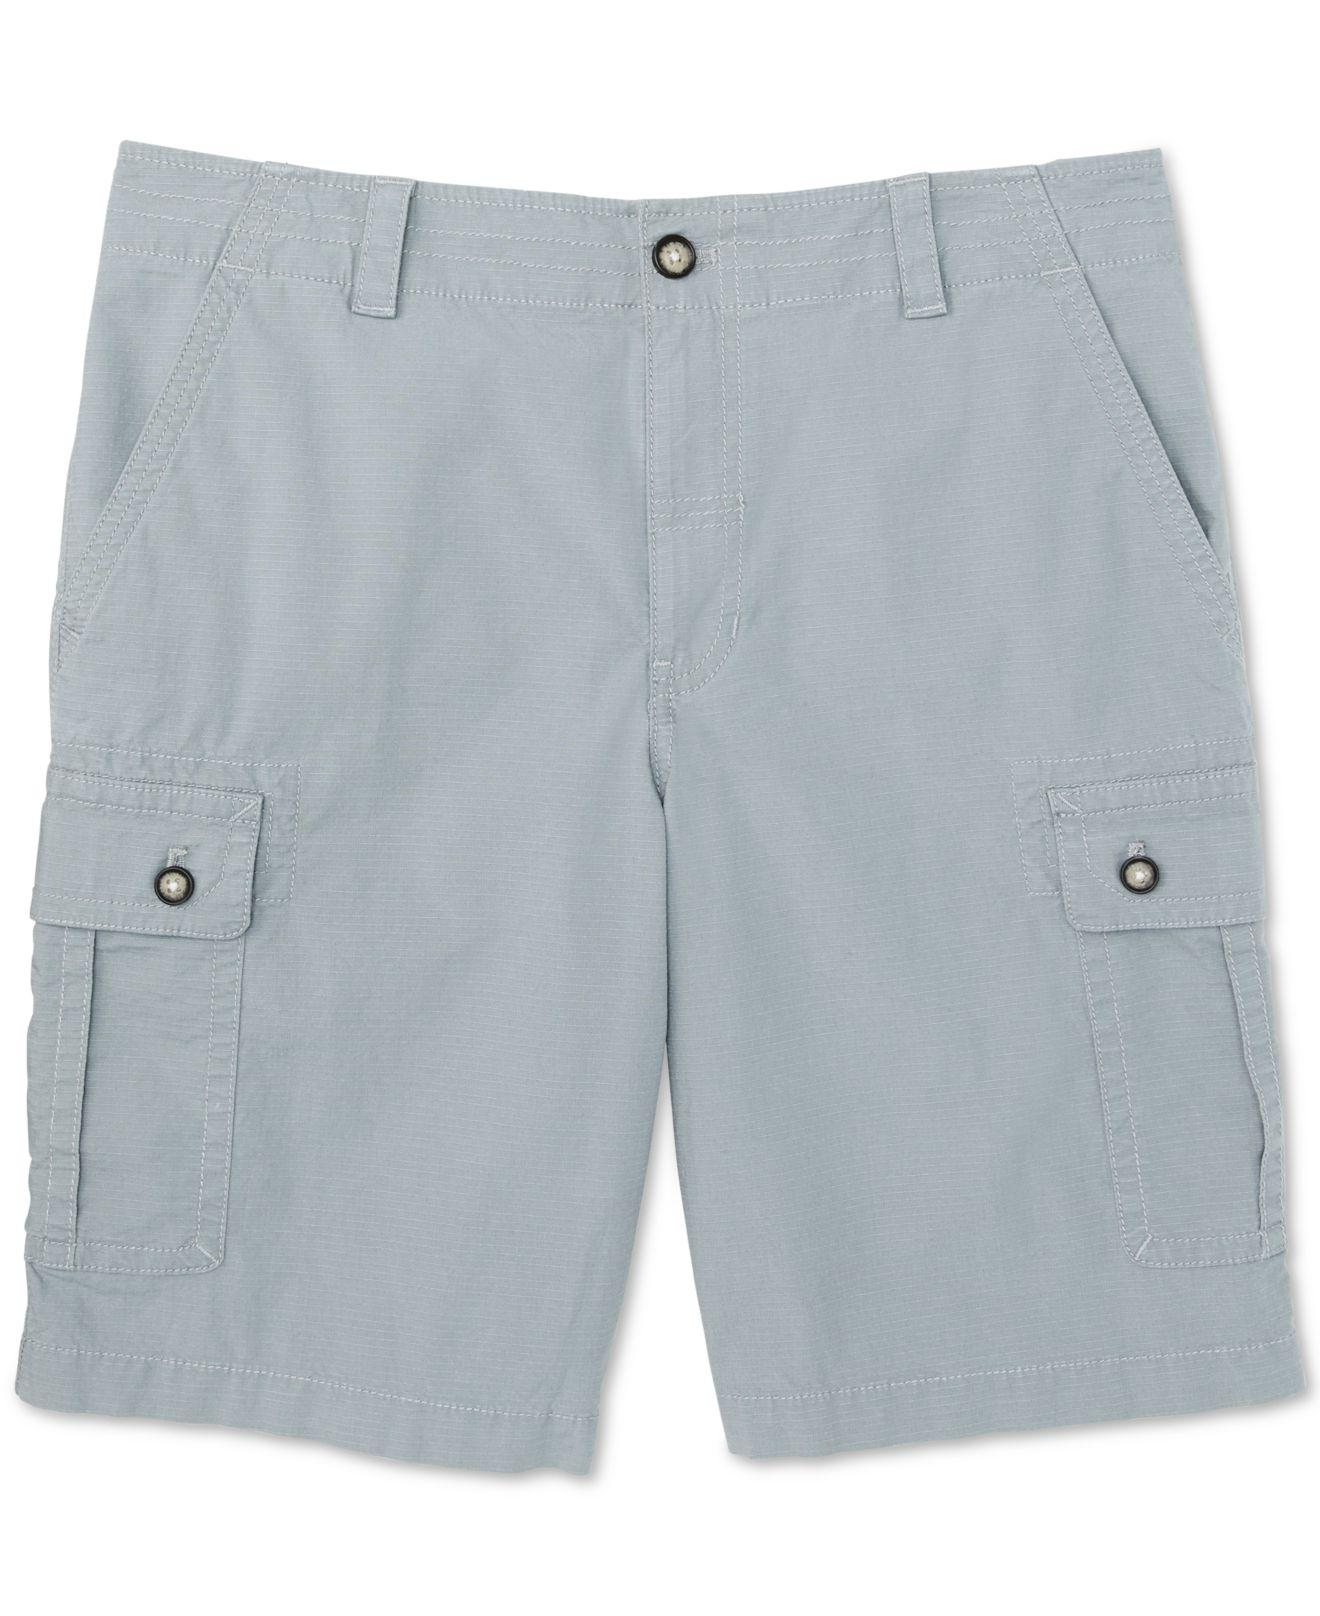 0a8b720cce Lyst - G.H.BASS Salt Cove Stretch Moisture-wicking Ripstop Cargo Shorts in  Blue for Men